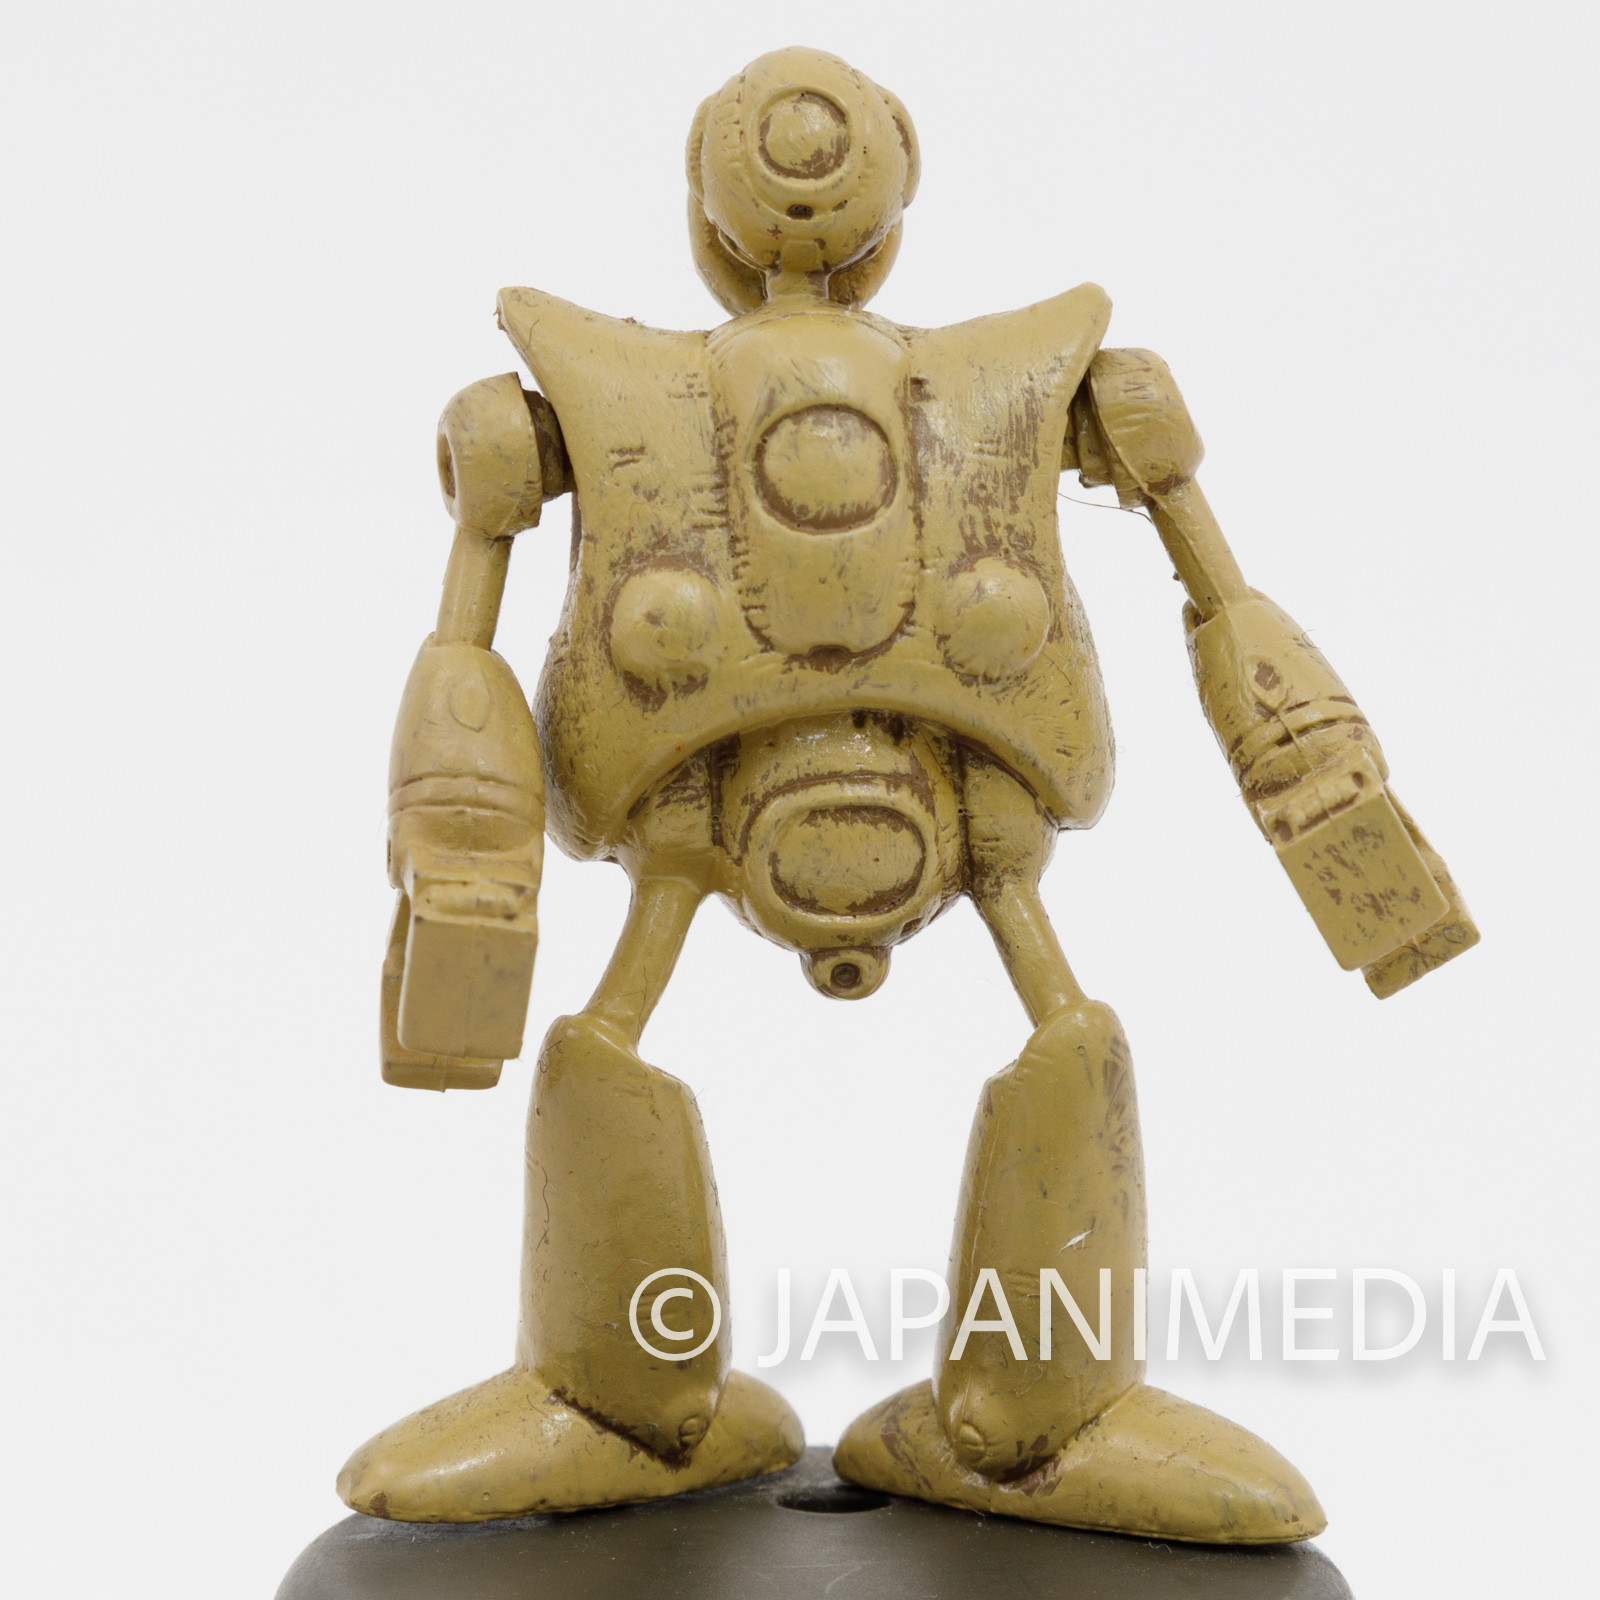 Dragon Ball Z Non-Colored Miniature Figure Pilaf Robot